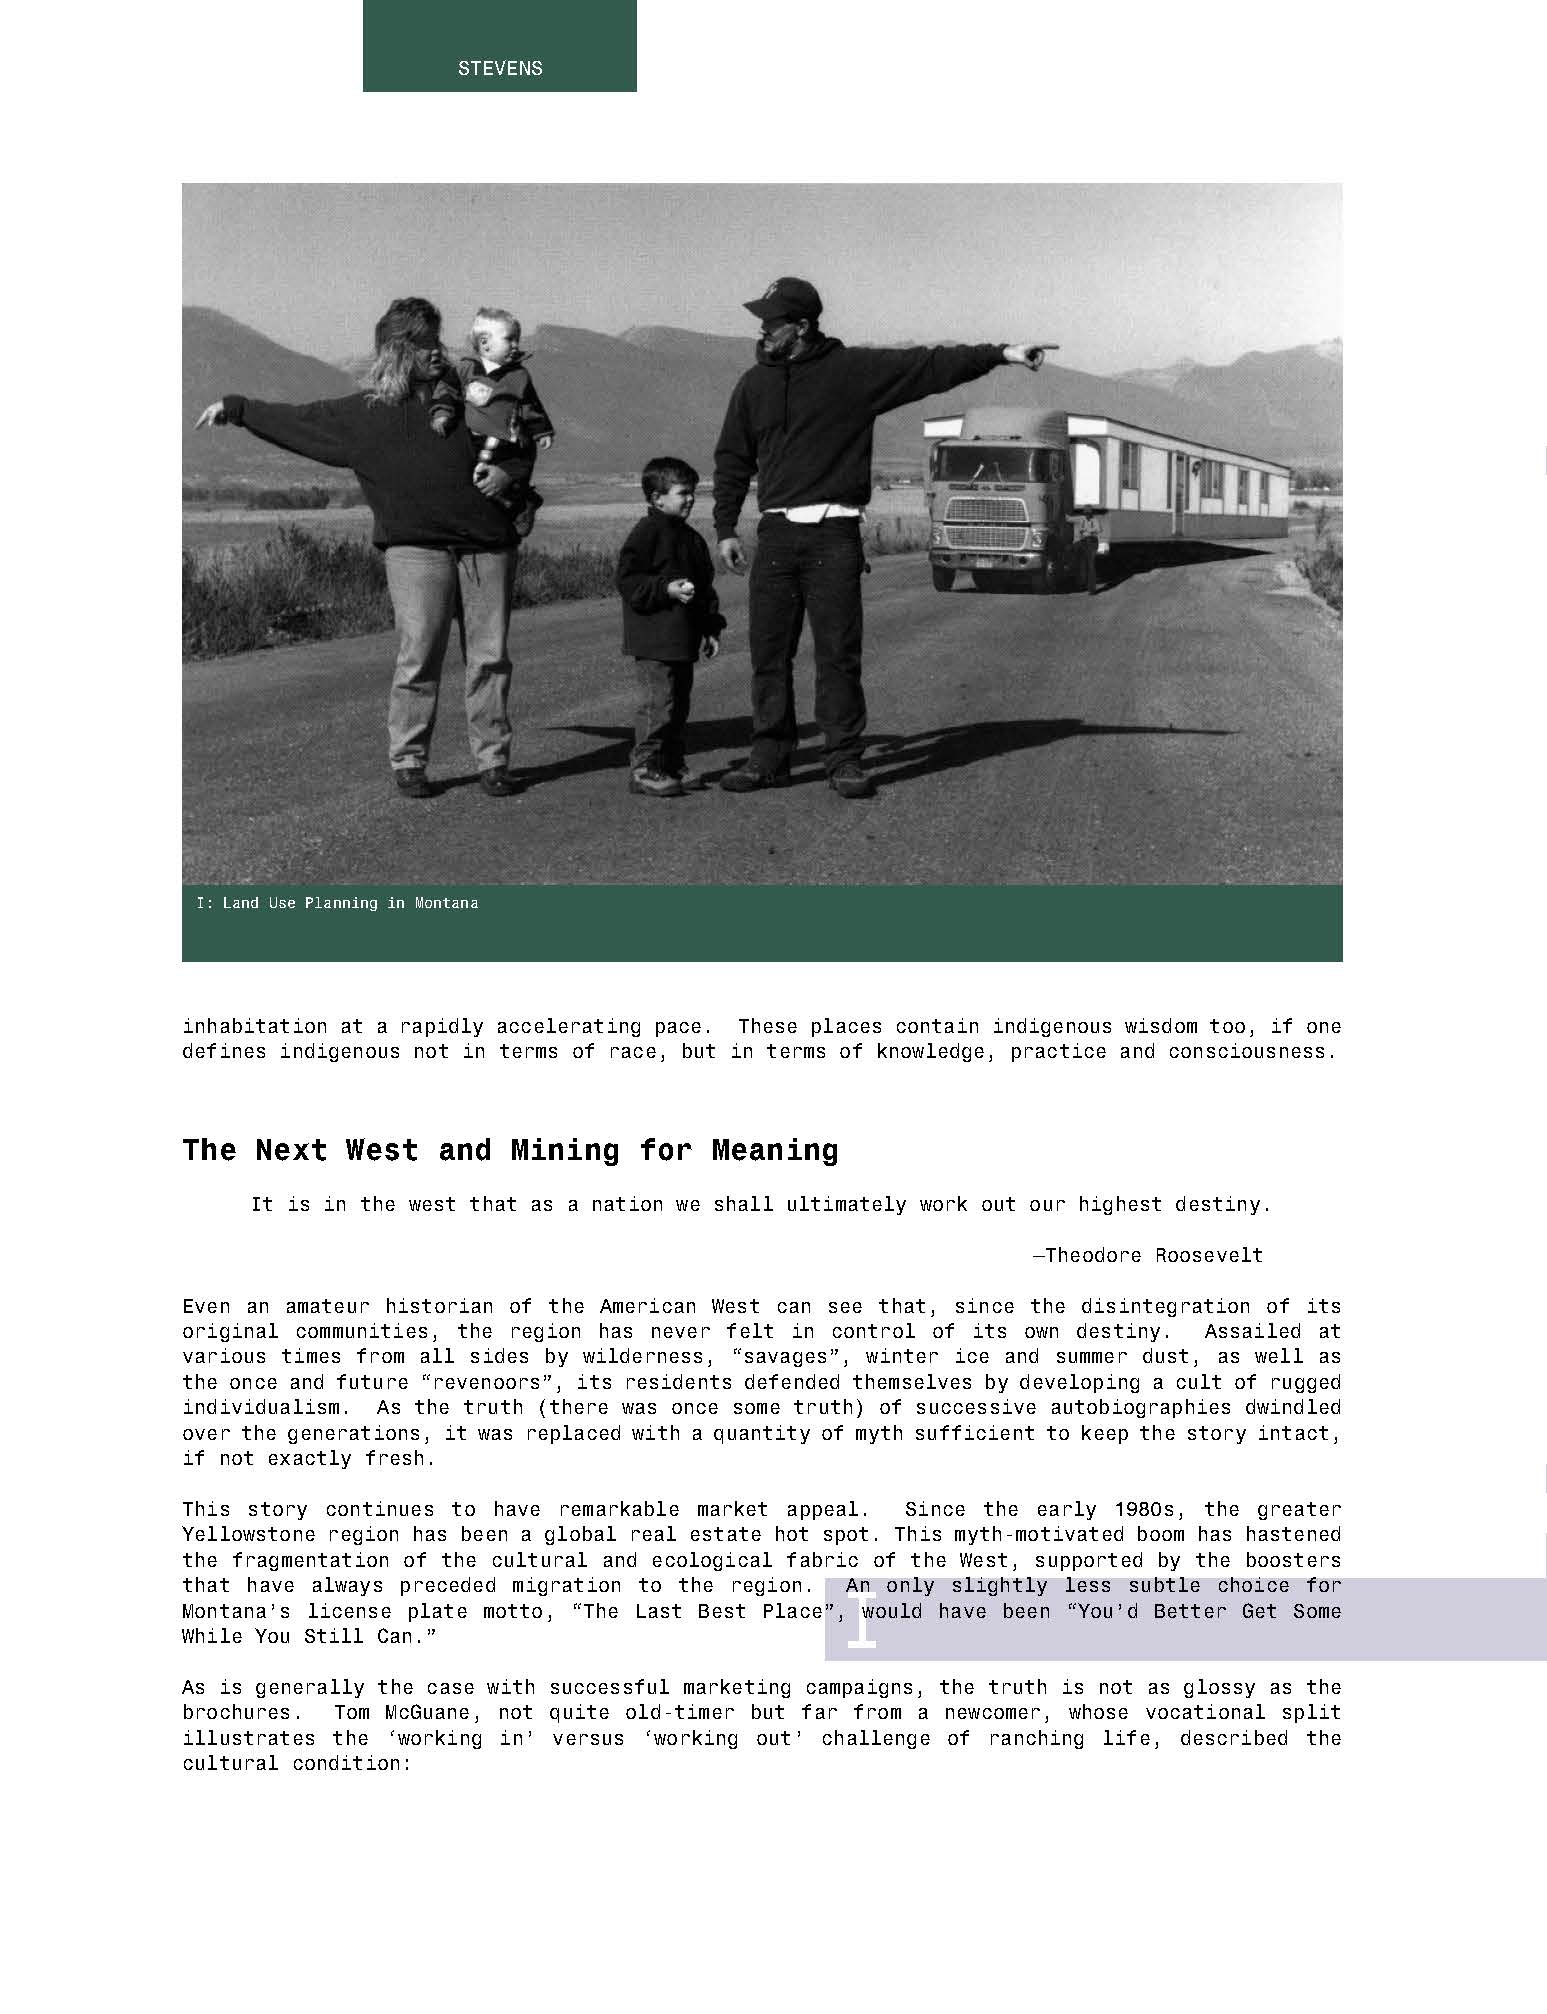 UT New West Land Co Article_Page_11.jpg